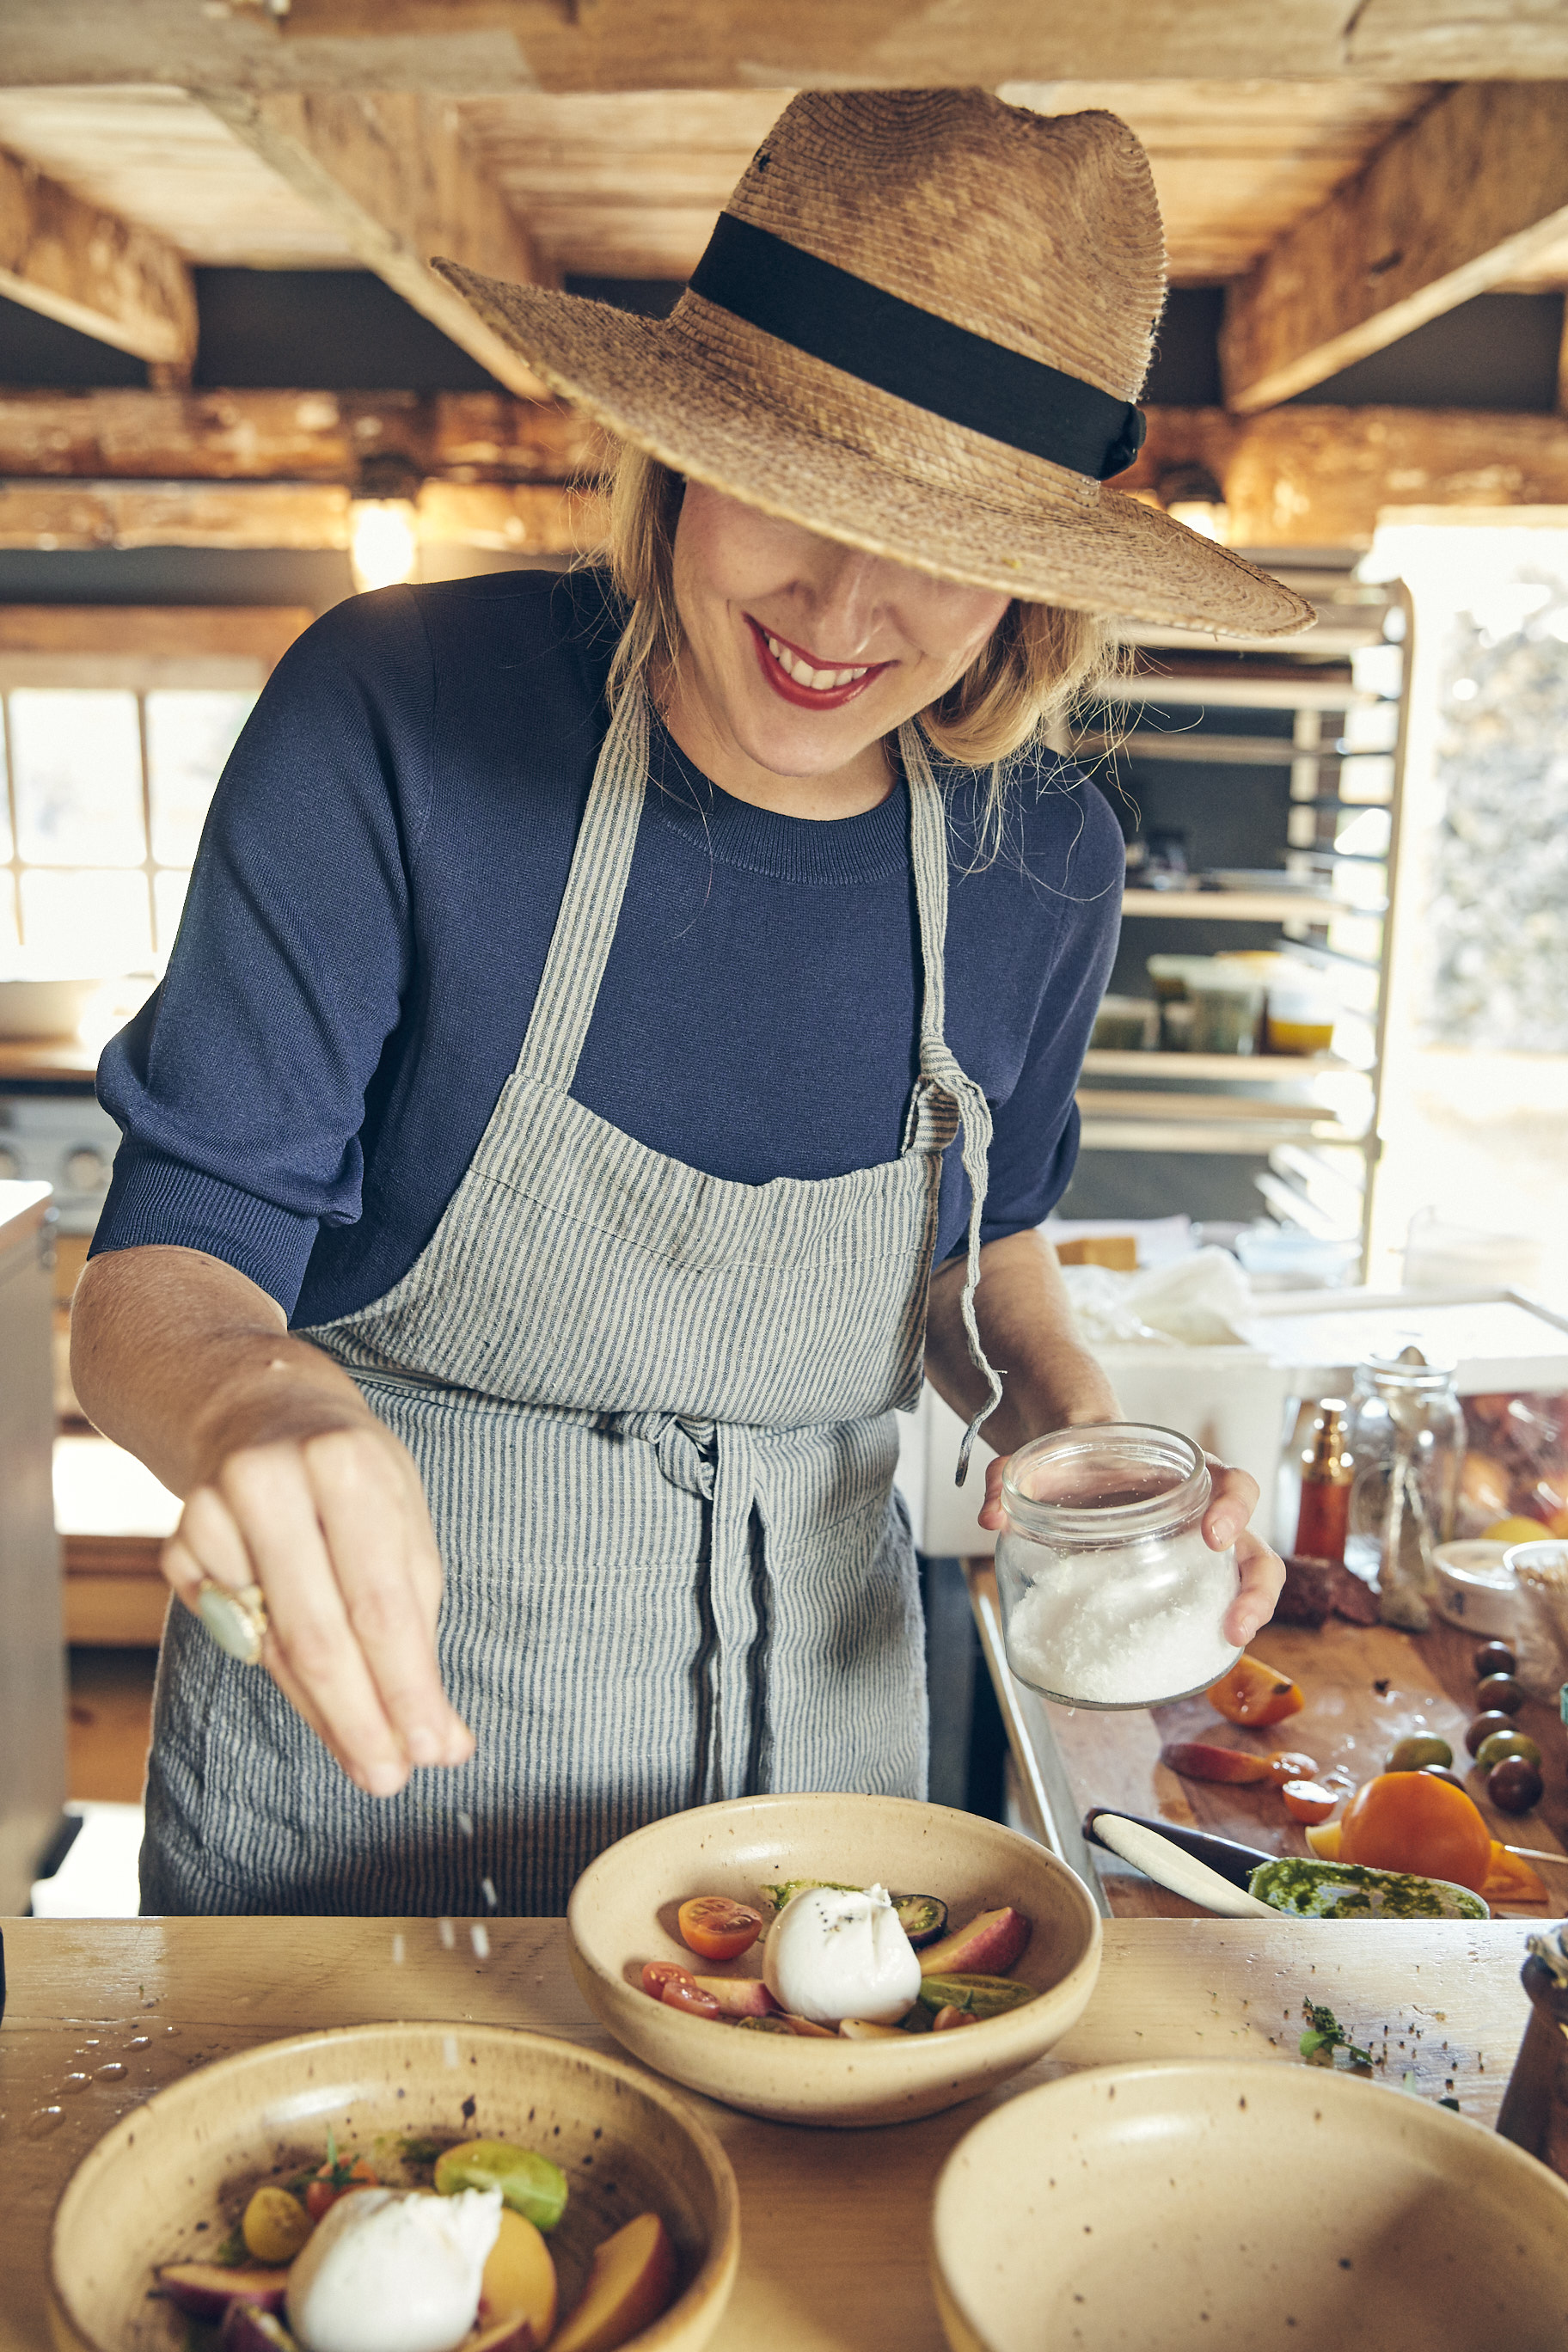 Cookbook Author Sarah Copeland's Dreamy Feed Supper at RAVENWOOD in Upstate New York #feedsupper #sarahcopeland